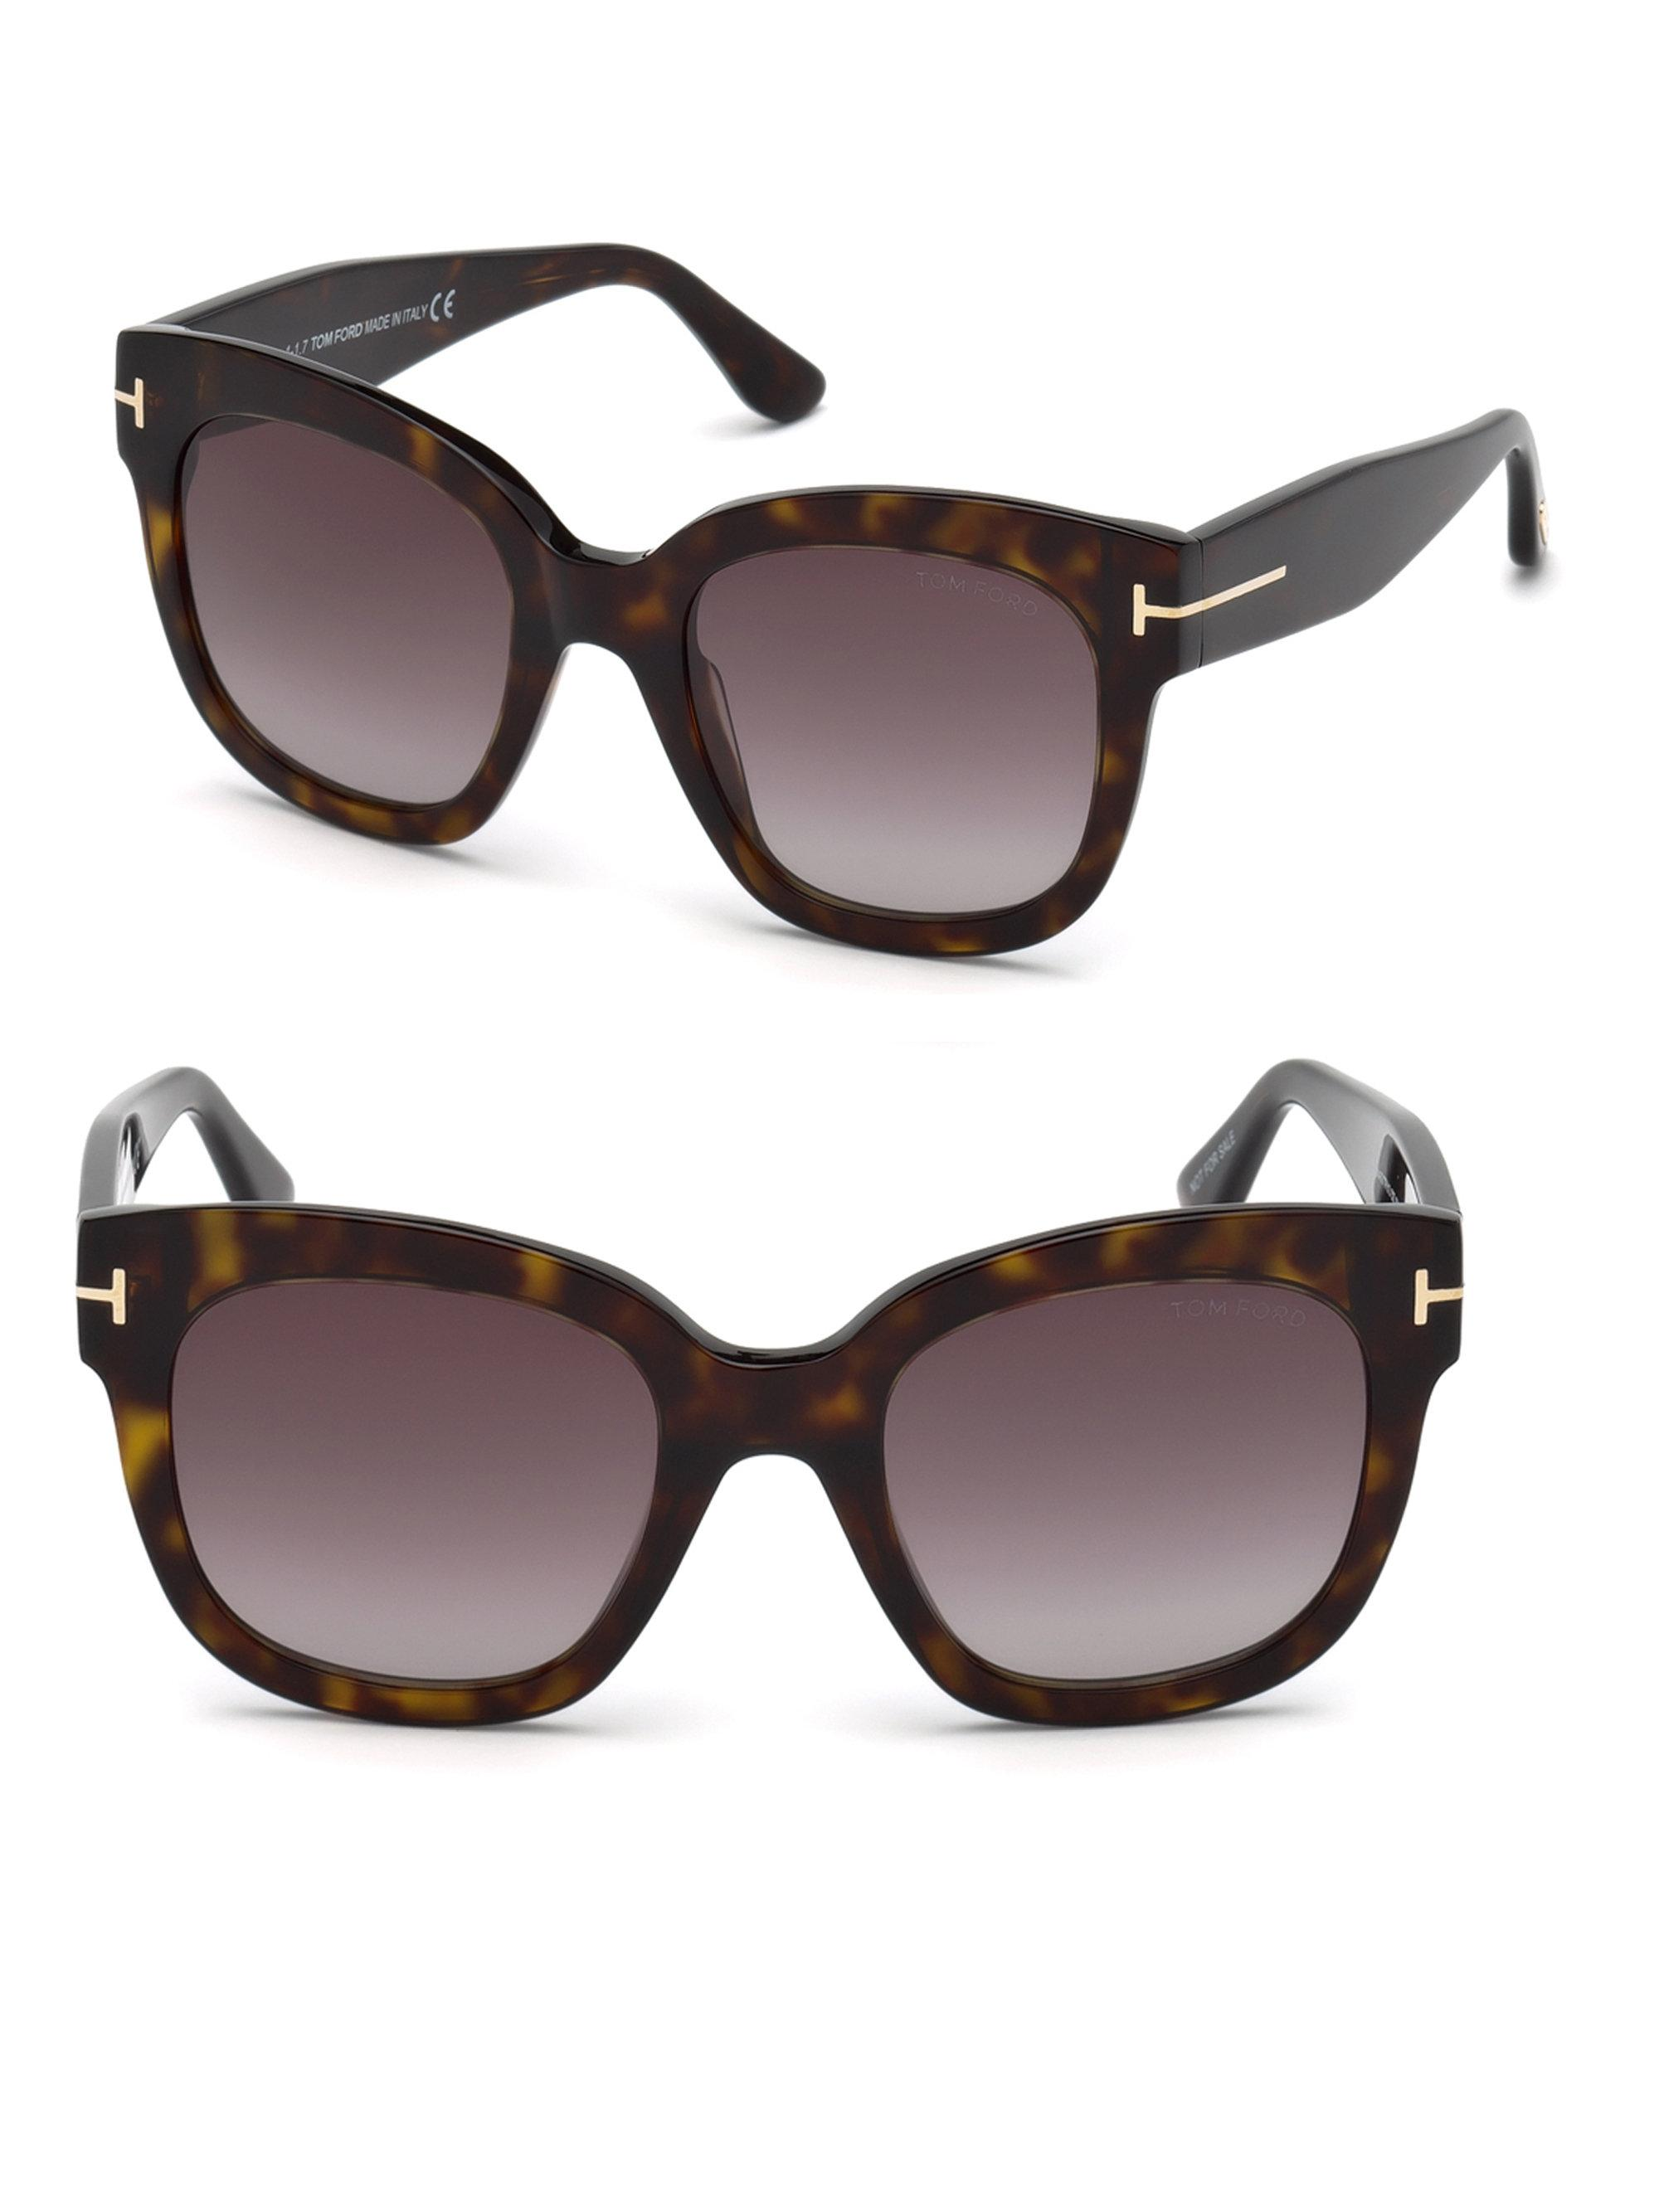 37496a8bd5 Tom Ford 55mm Beatrix Square Sunglasses in Brown - Lyst